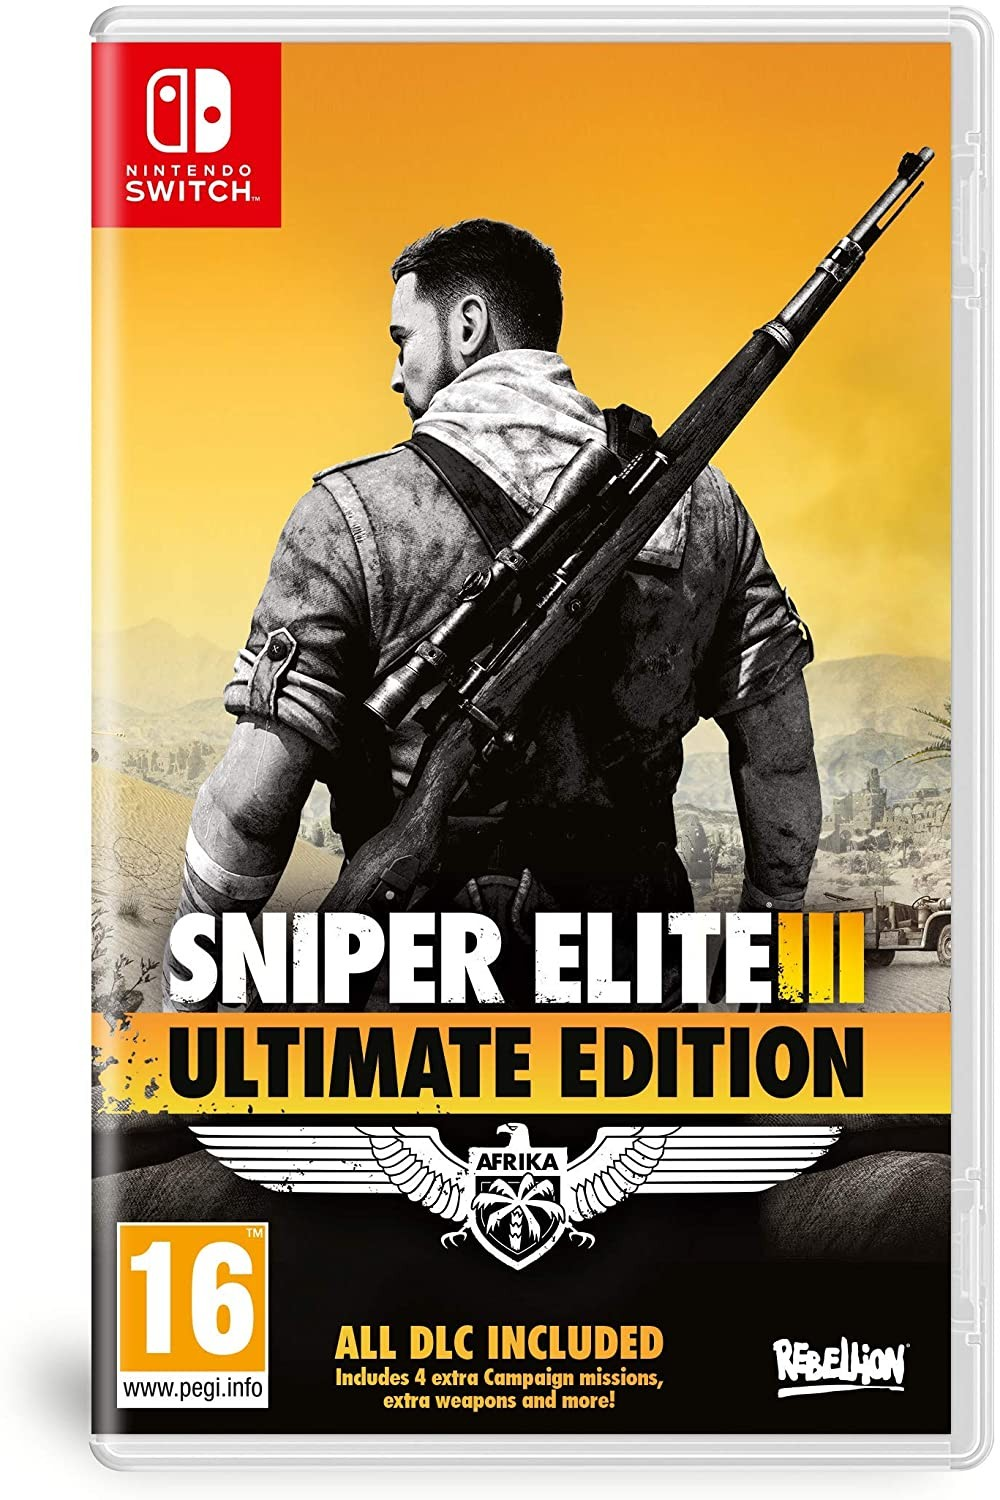 The Sniper Elite 3 Ultimate Edition SWITCH